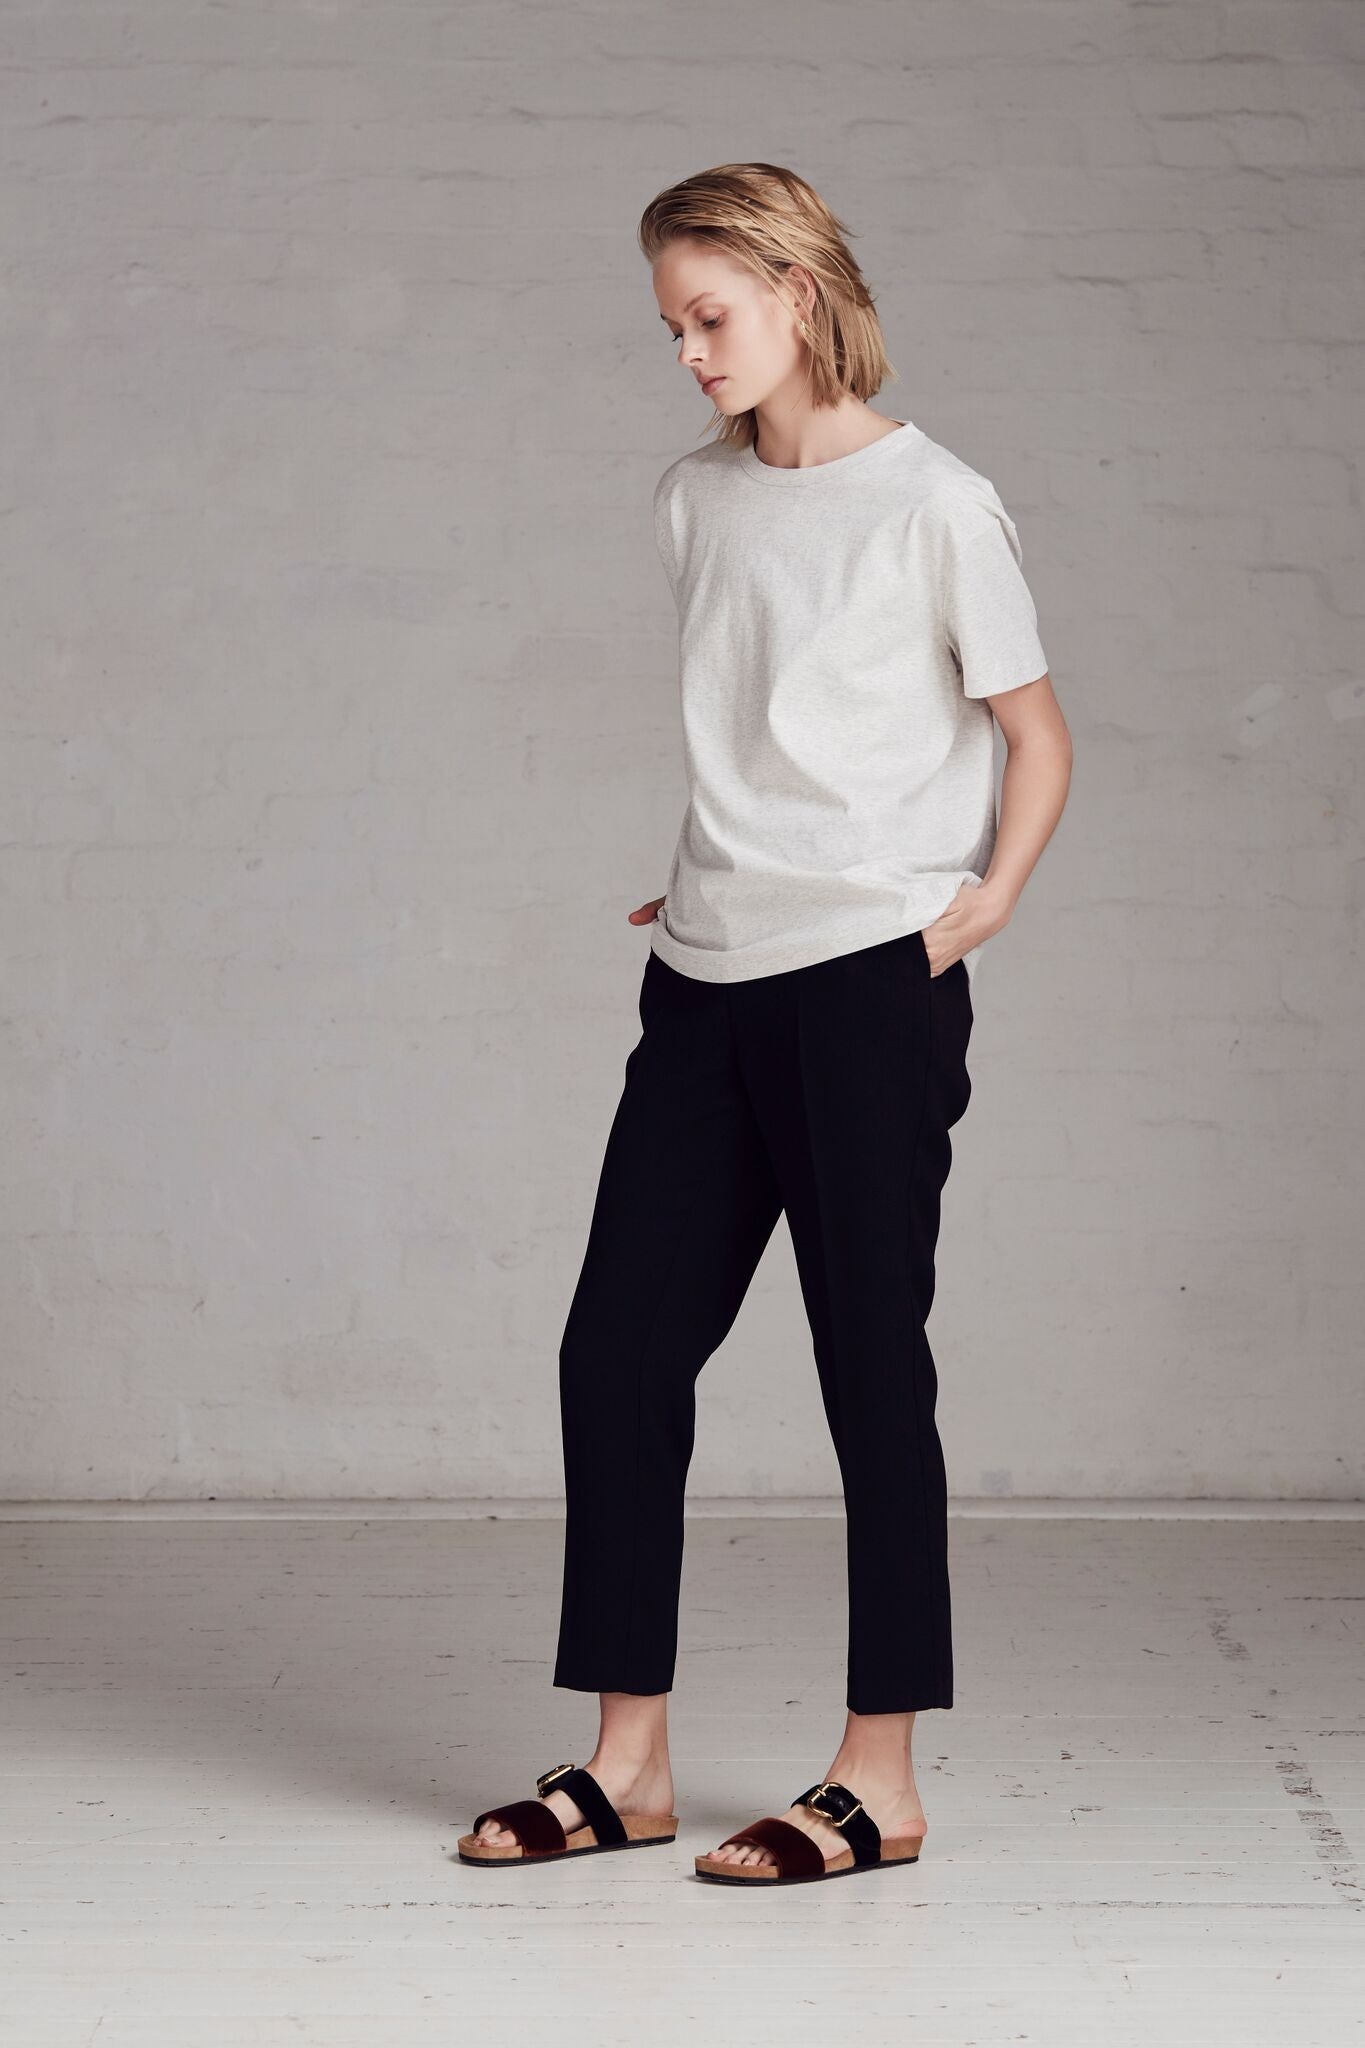 FWRD the Label Asta Pant - Black - Stevie May, The East Order, Talulah, Pasduchas, Everly Collective